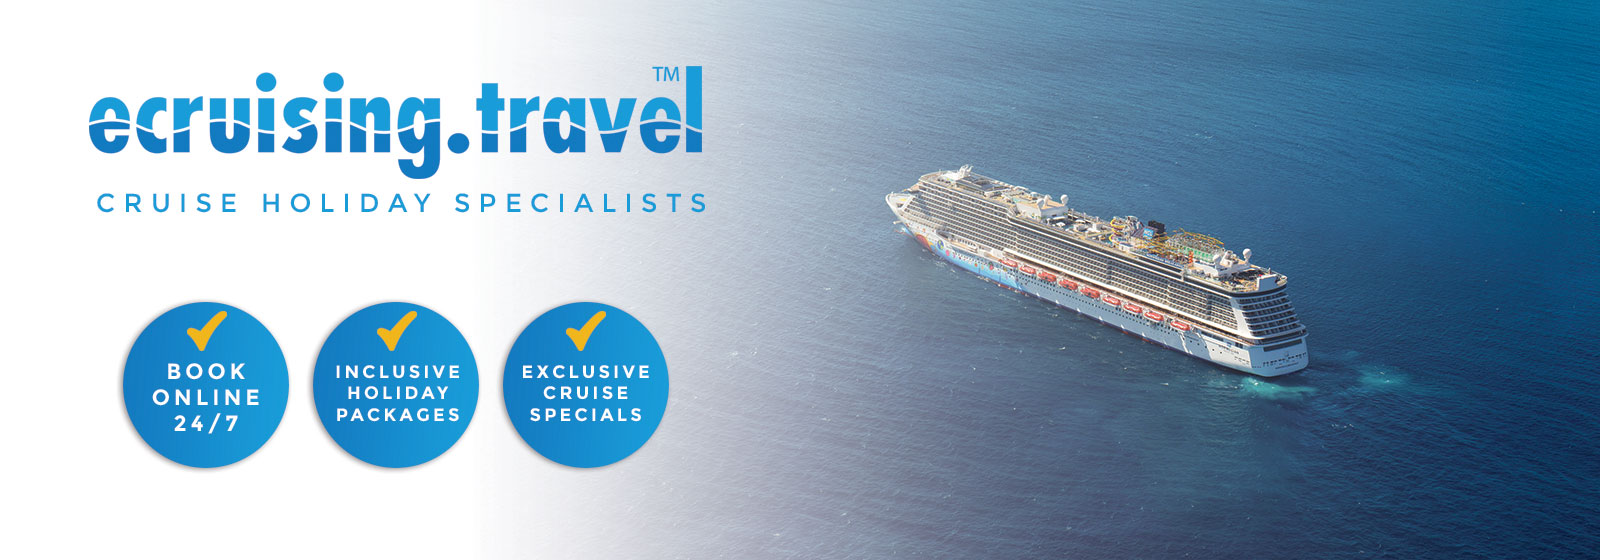 Latest Cruise Deals & Cruise Holiday Packages at Lowest